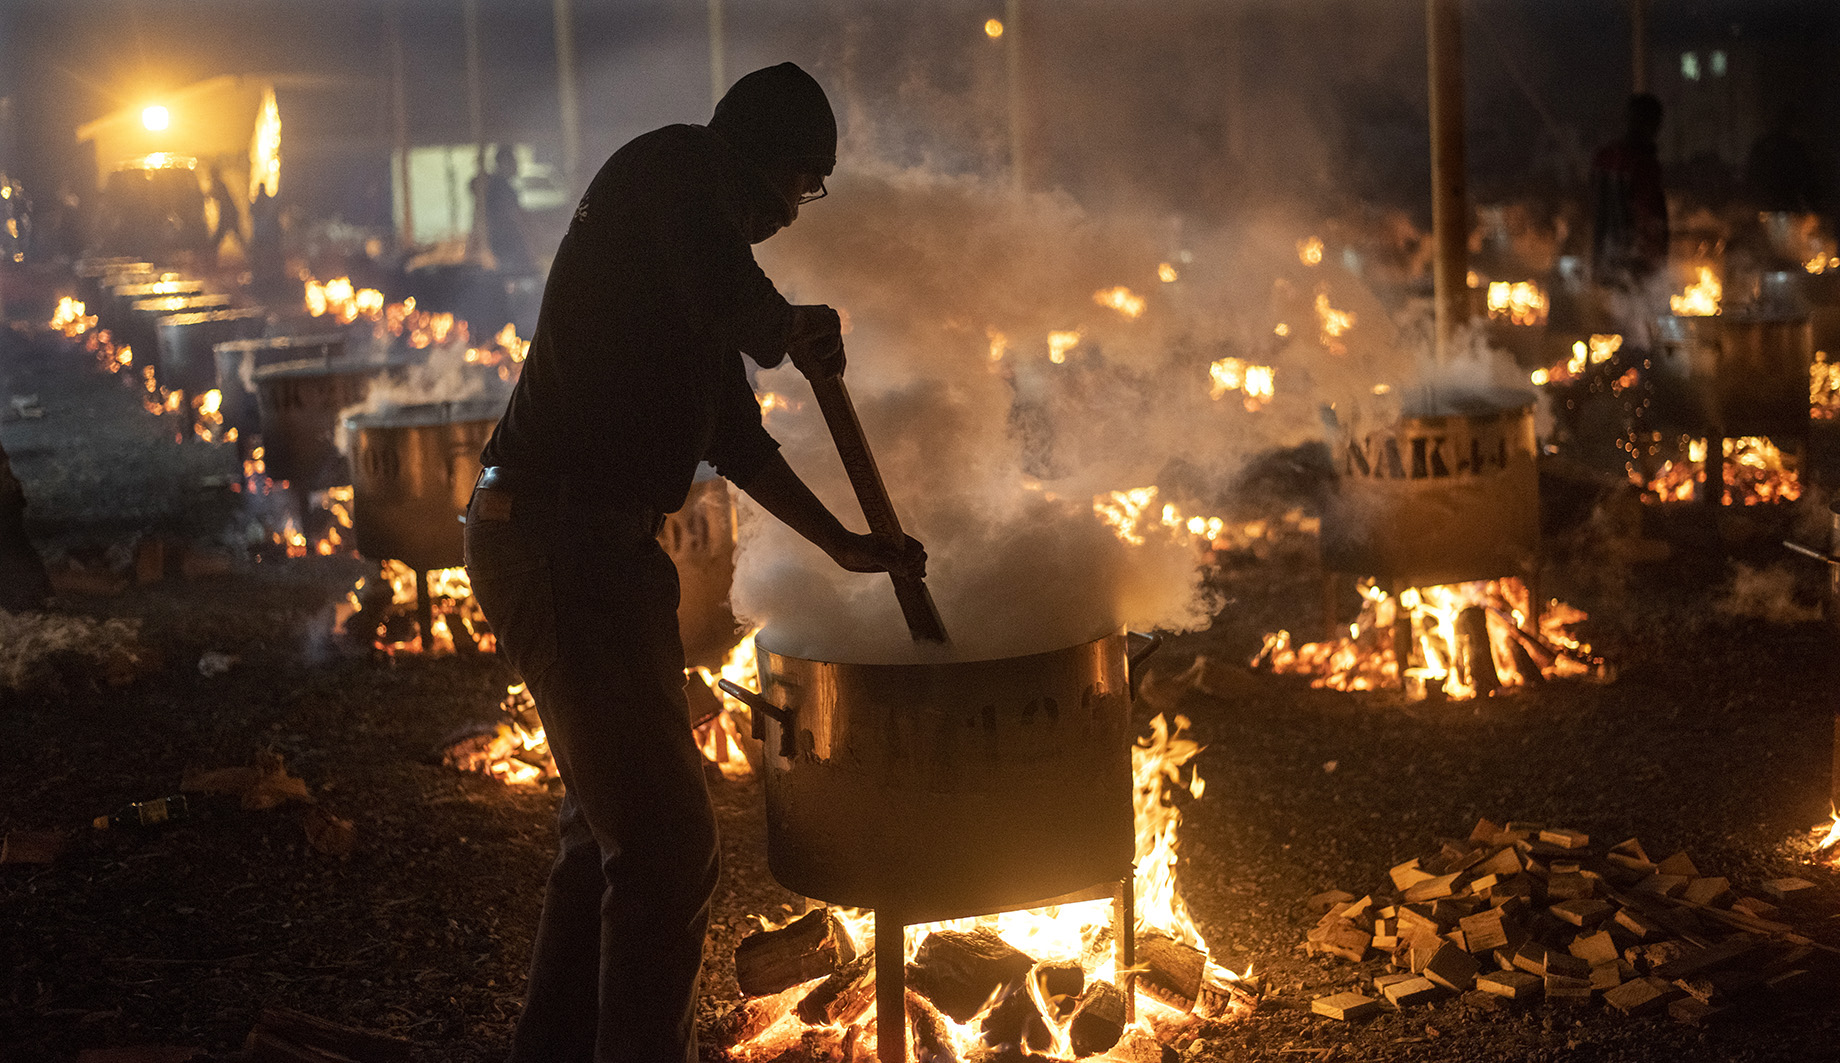 MAVERICK CITIZEN: Cape Town organisation cooks tons of Aknie for 90,000 people to mark Eid al-Fitr